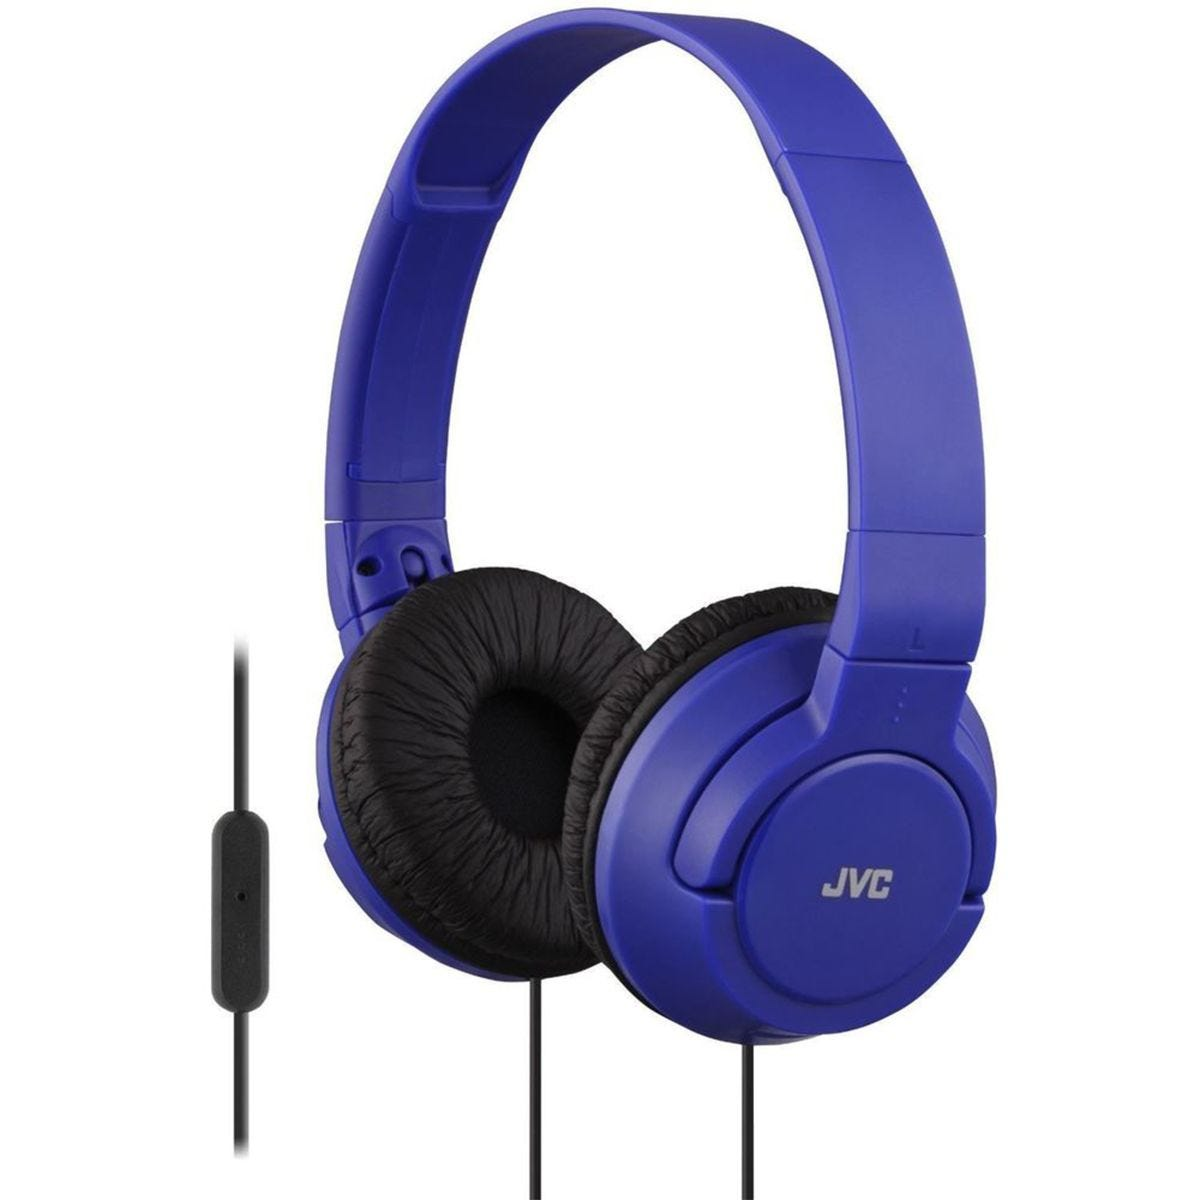 JVC Powerful Bass Headphones with Remote Mic - Blue